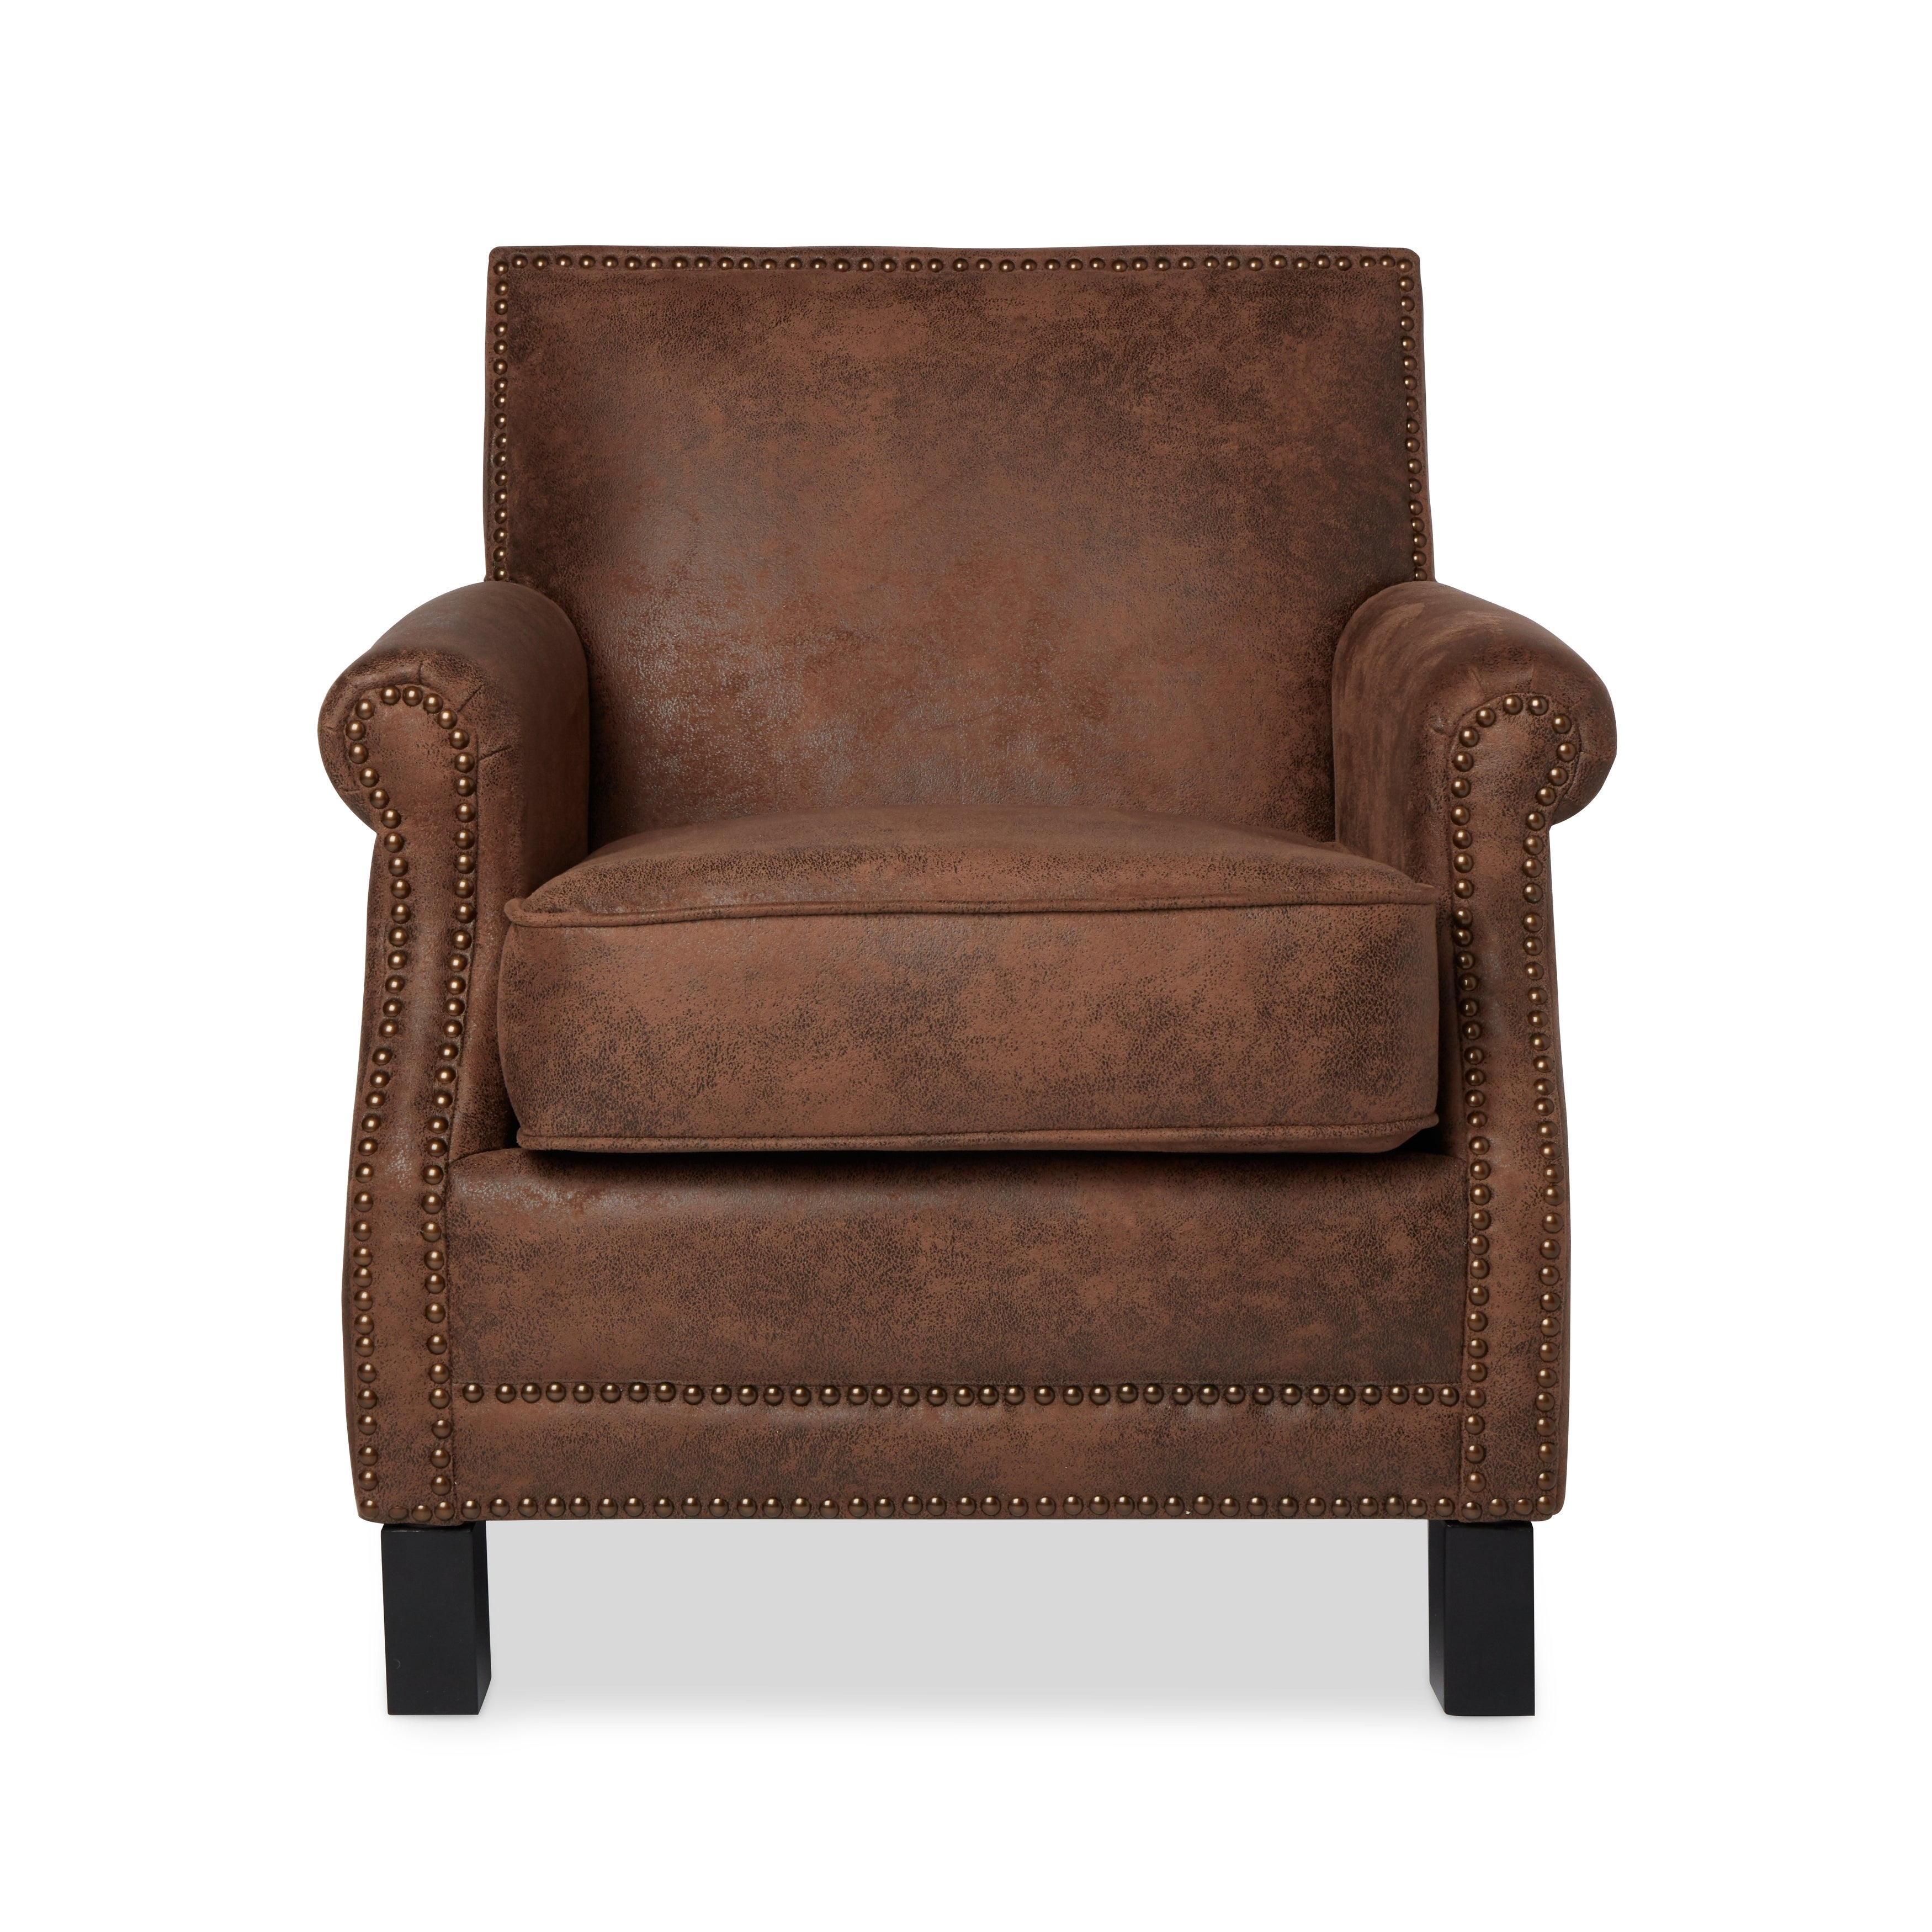 Abbyson Chloe Antique Brown Fabric Club Chair   Free Shipping Today    Overstock   16980818